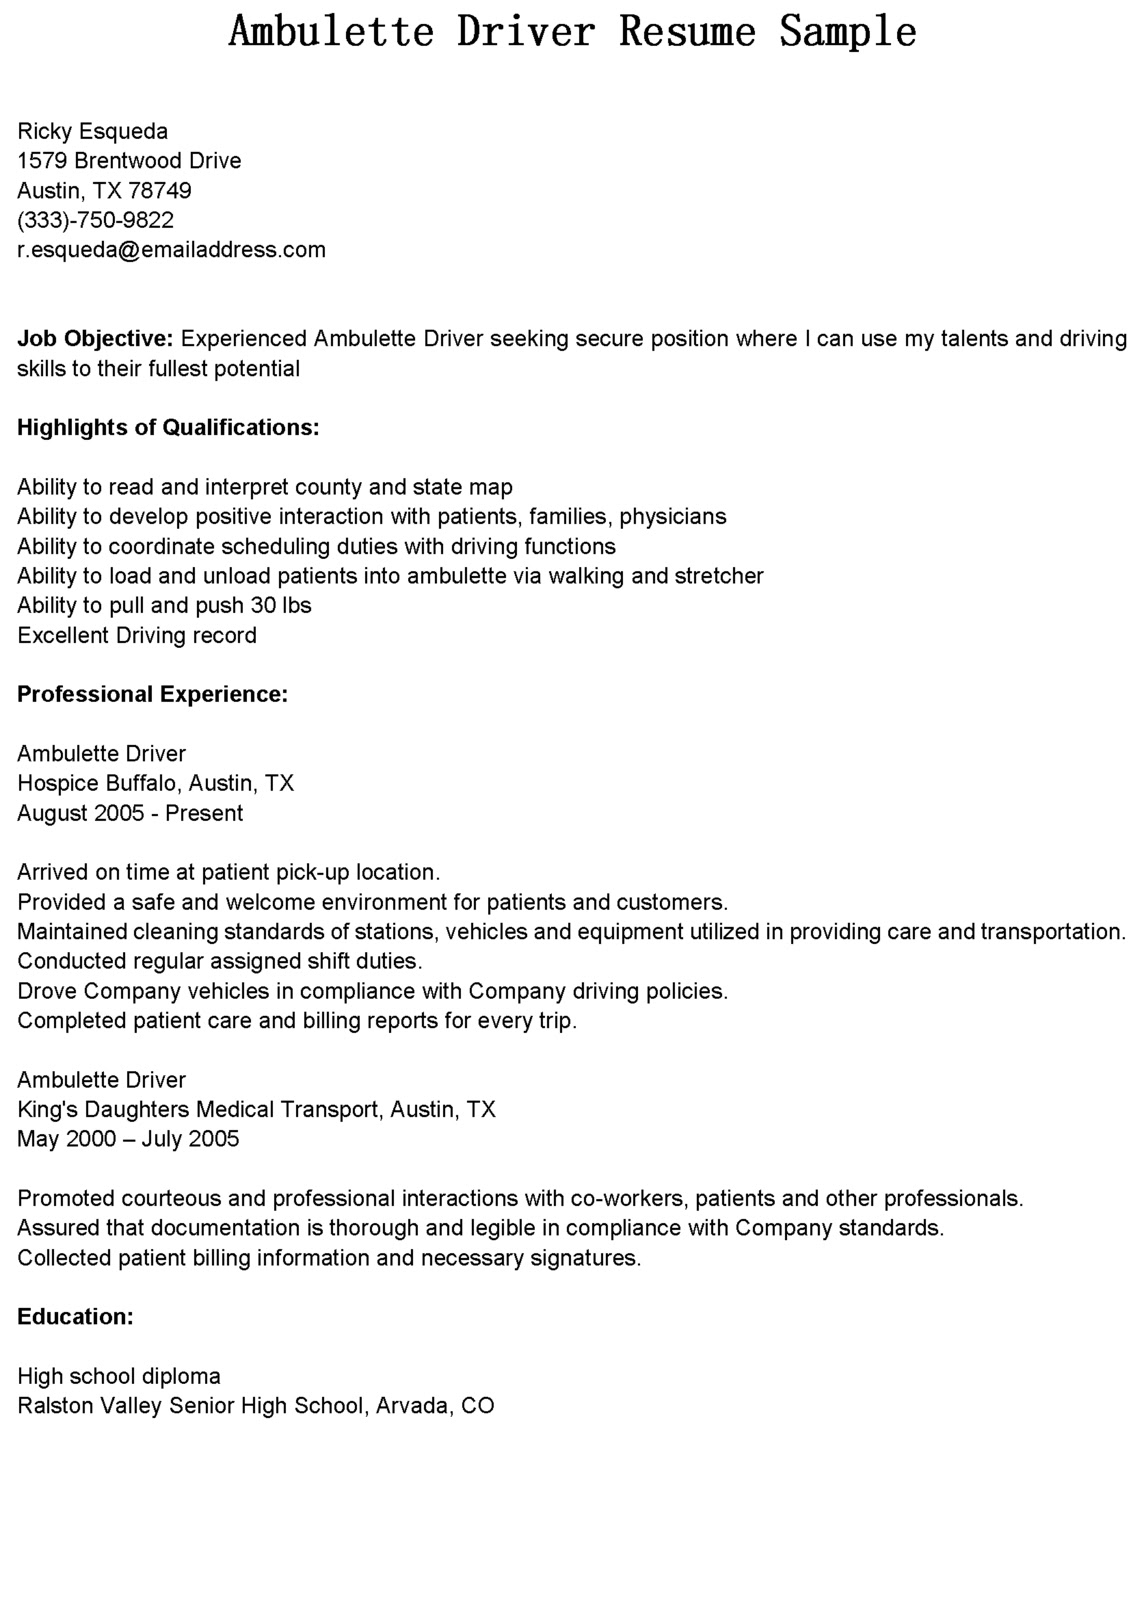 Sample Of Driver Resume Zrom